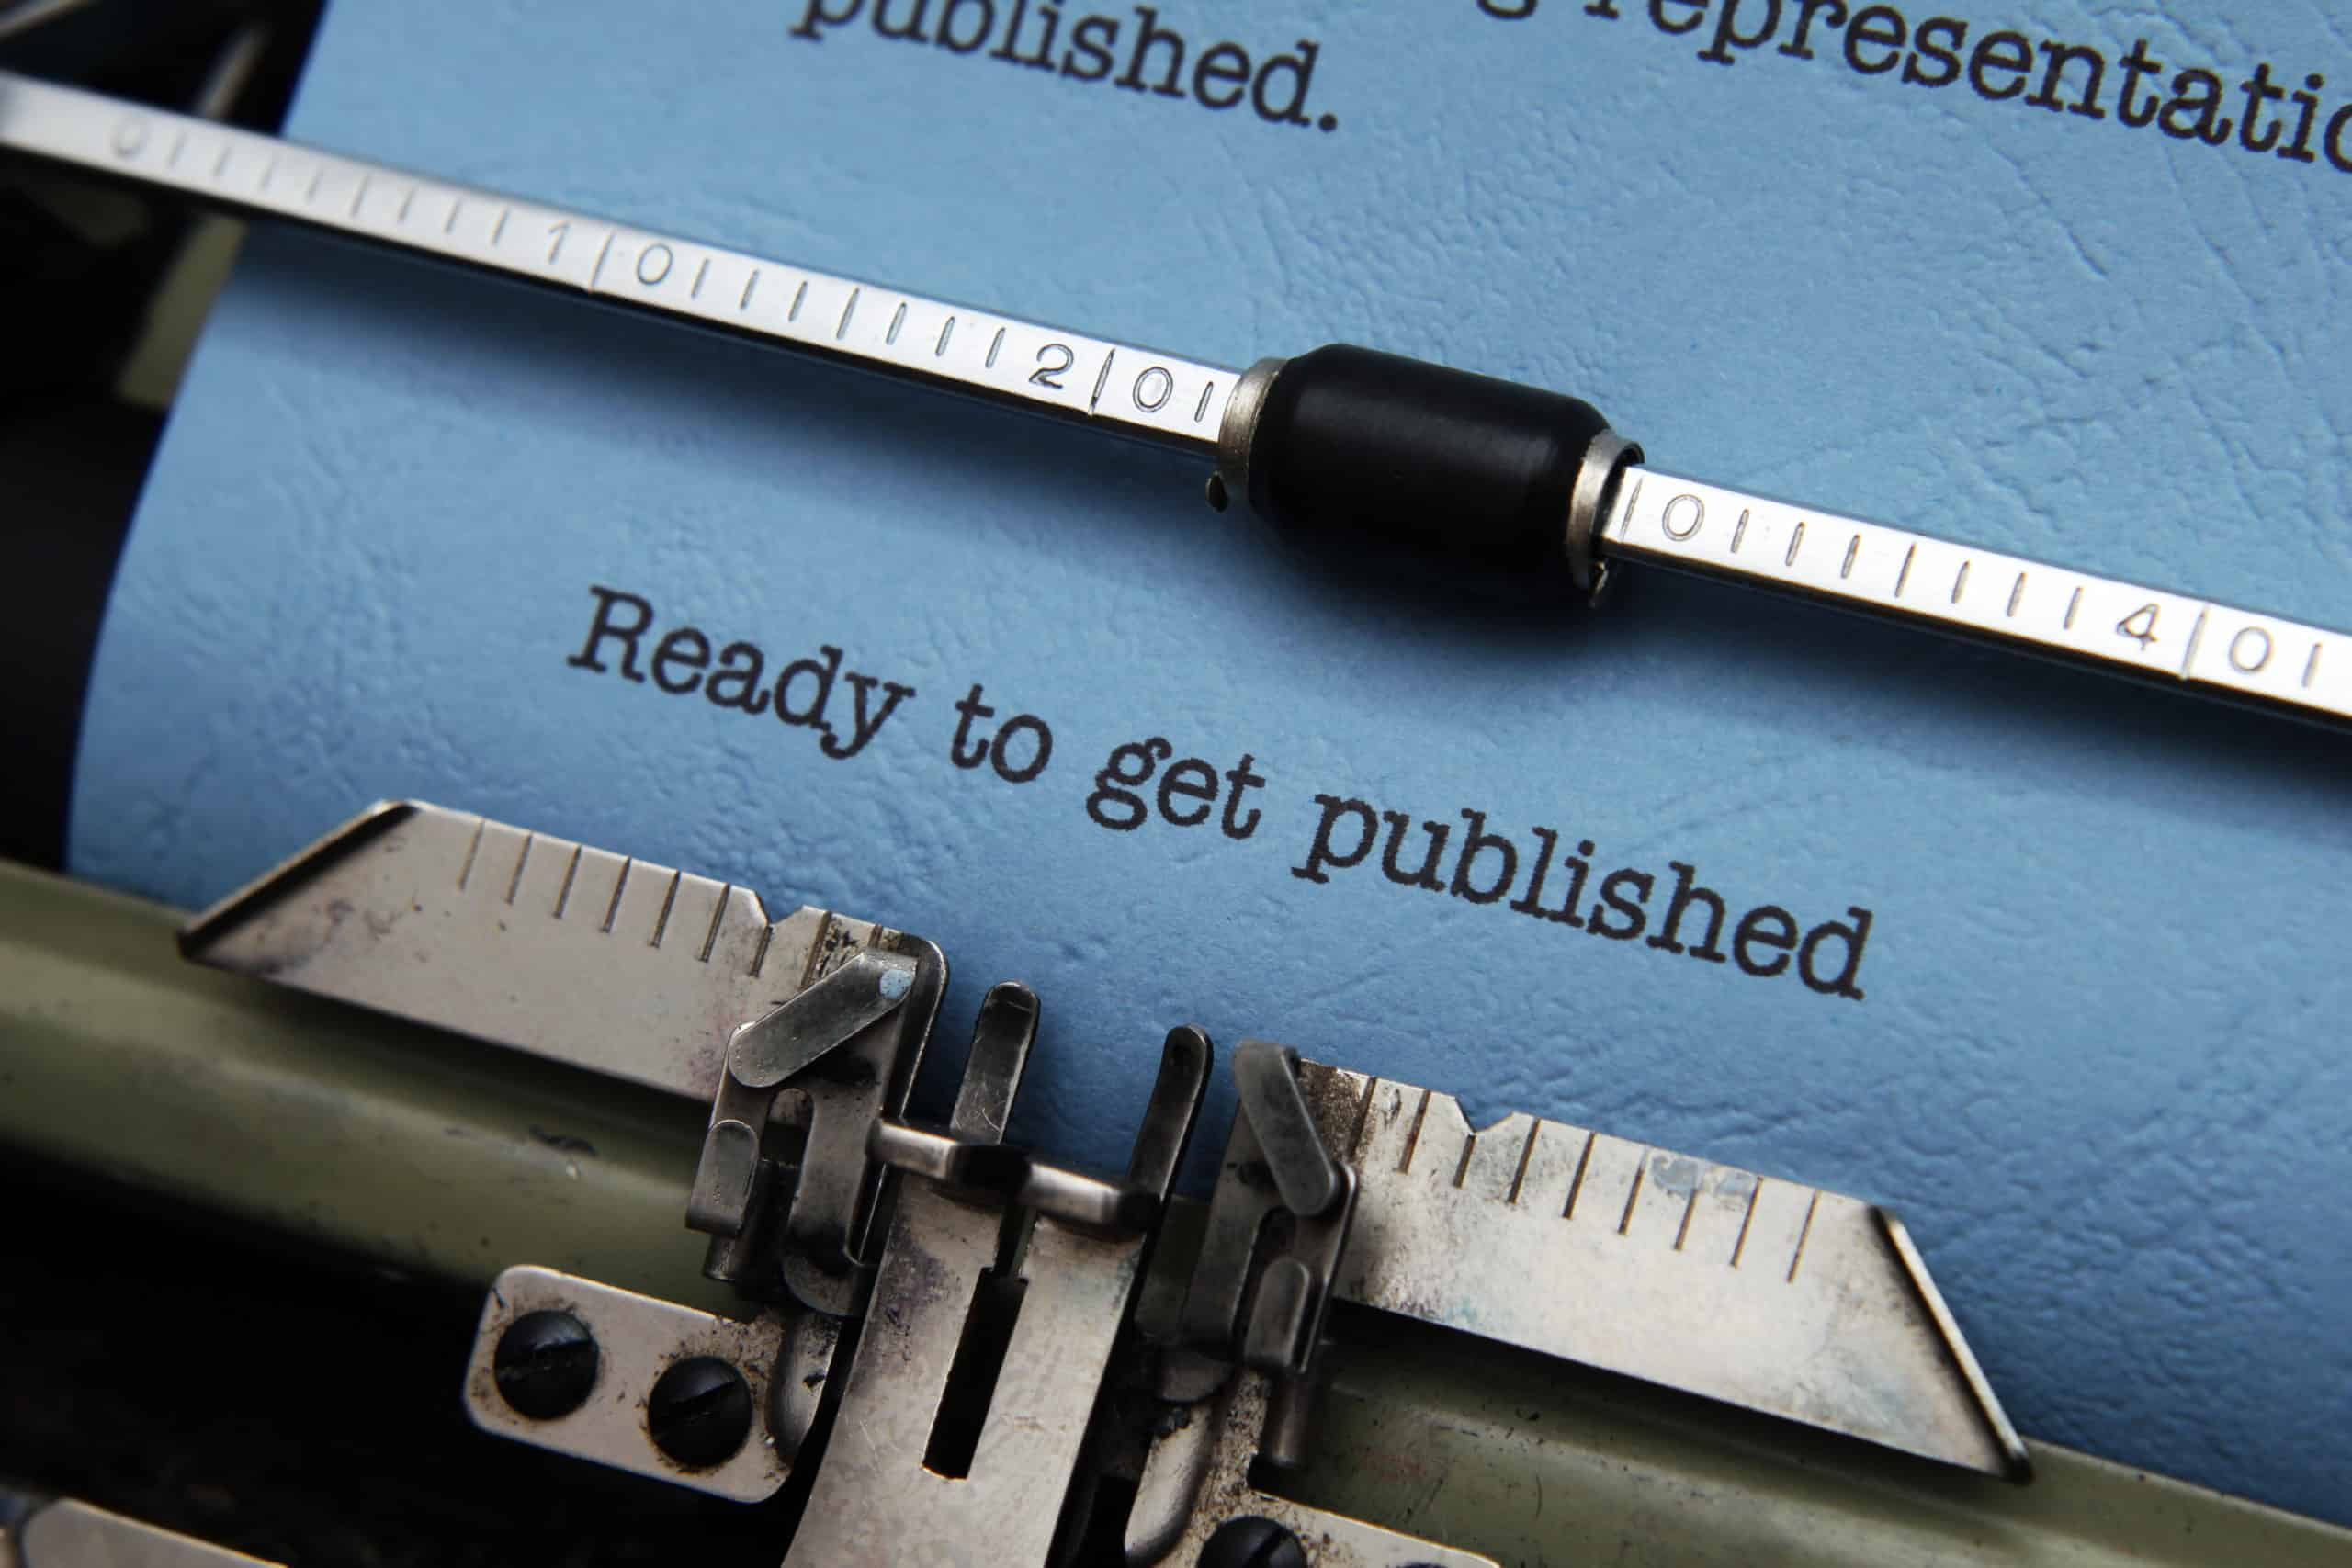 Prepare to Publish: Tips to Make the Journey Easier